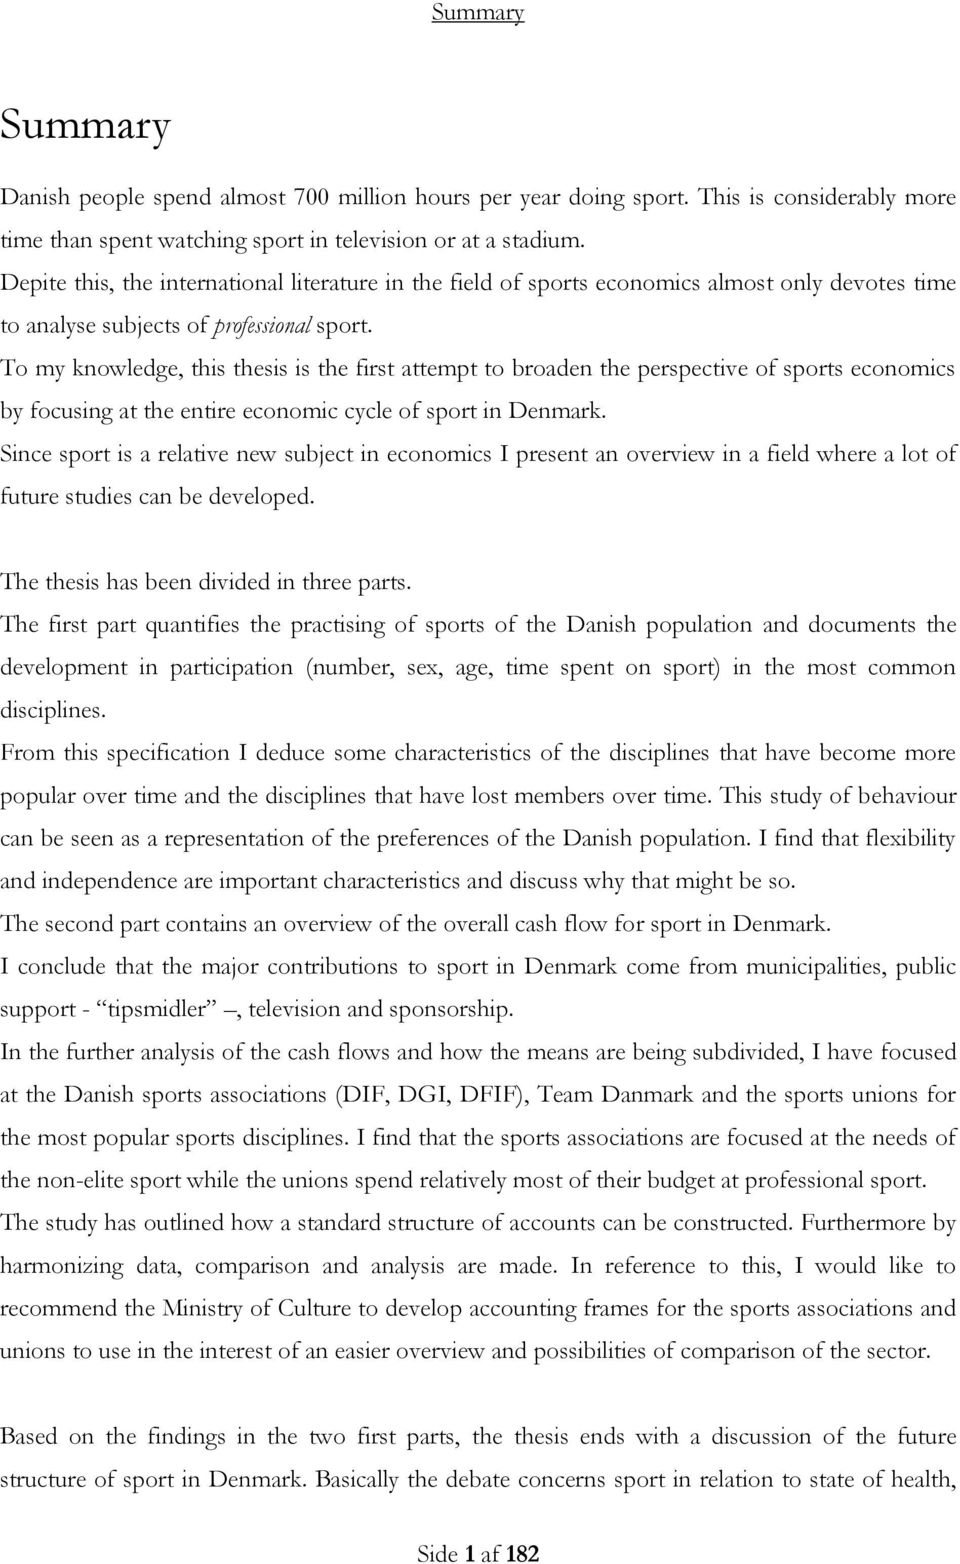 To my knowledge, this thesis is the first attempt to broaden the perspective of sports economics by focusing at the entire economic cycle of sport in Denmark.